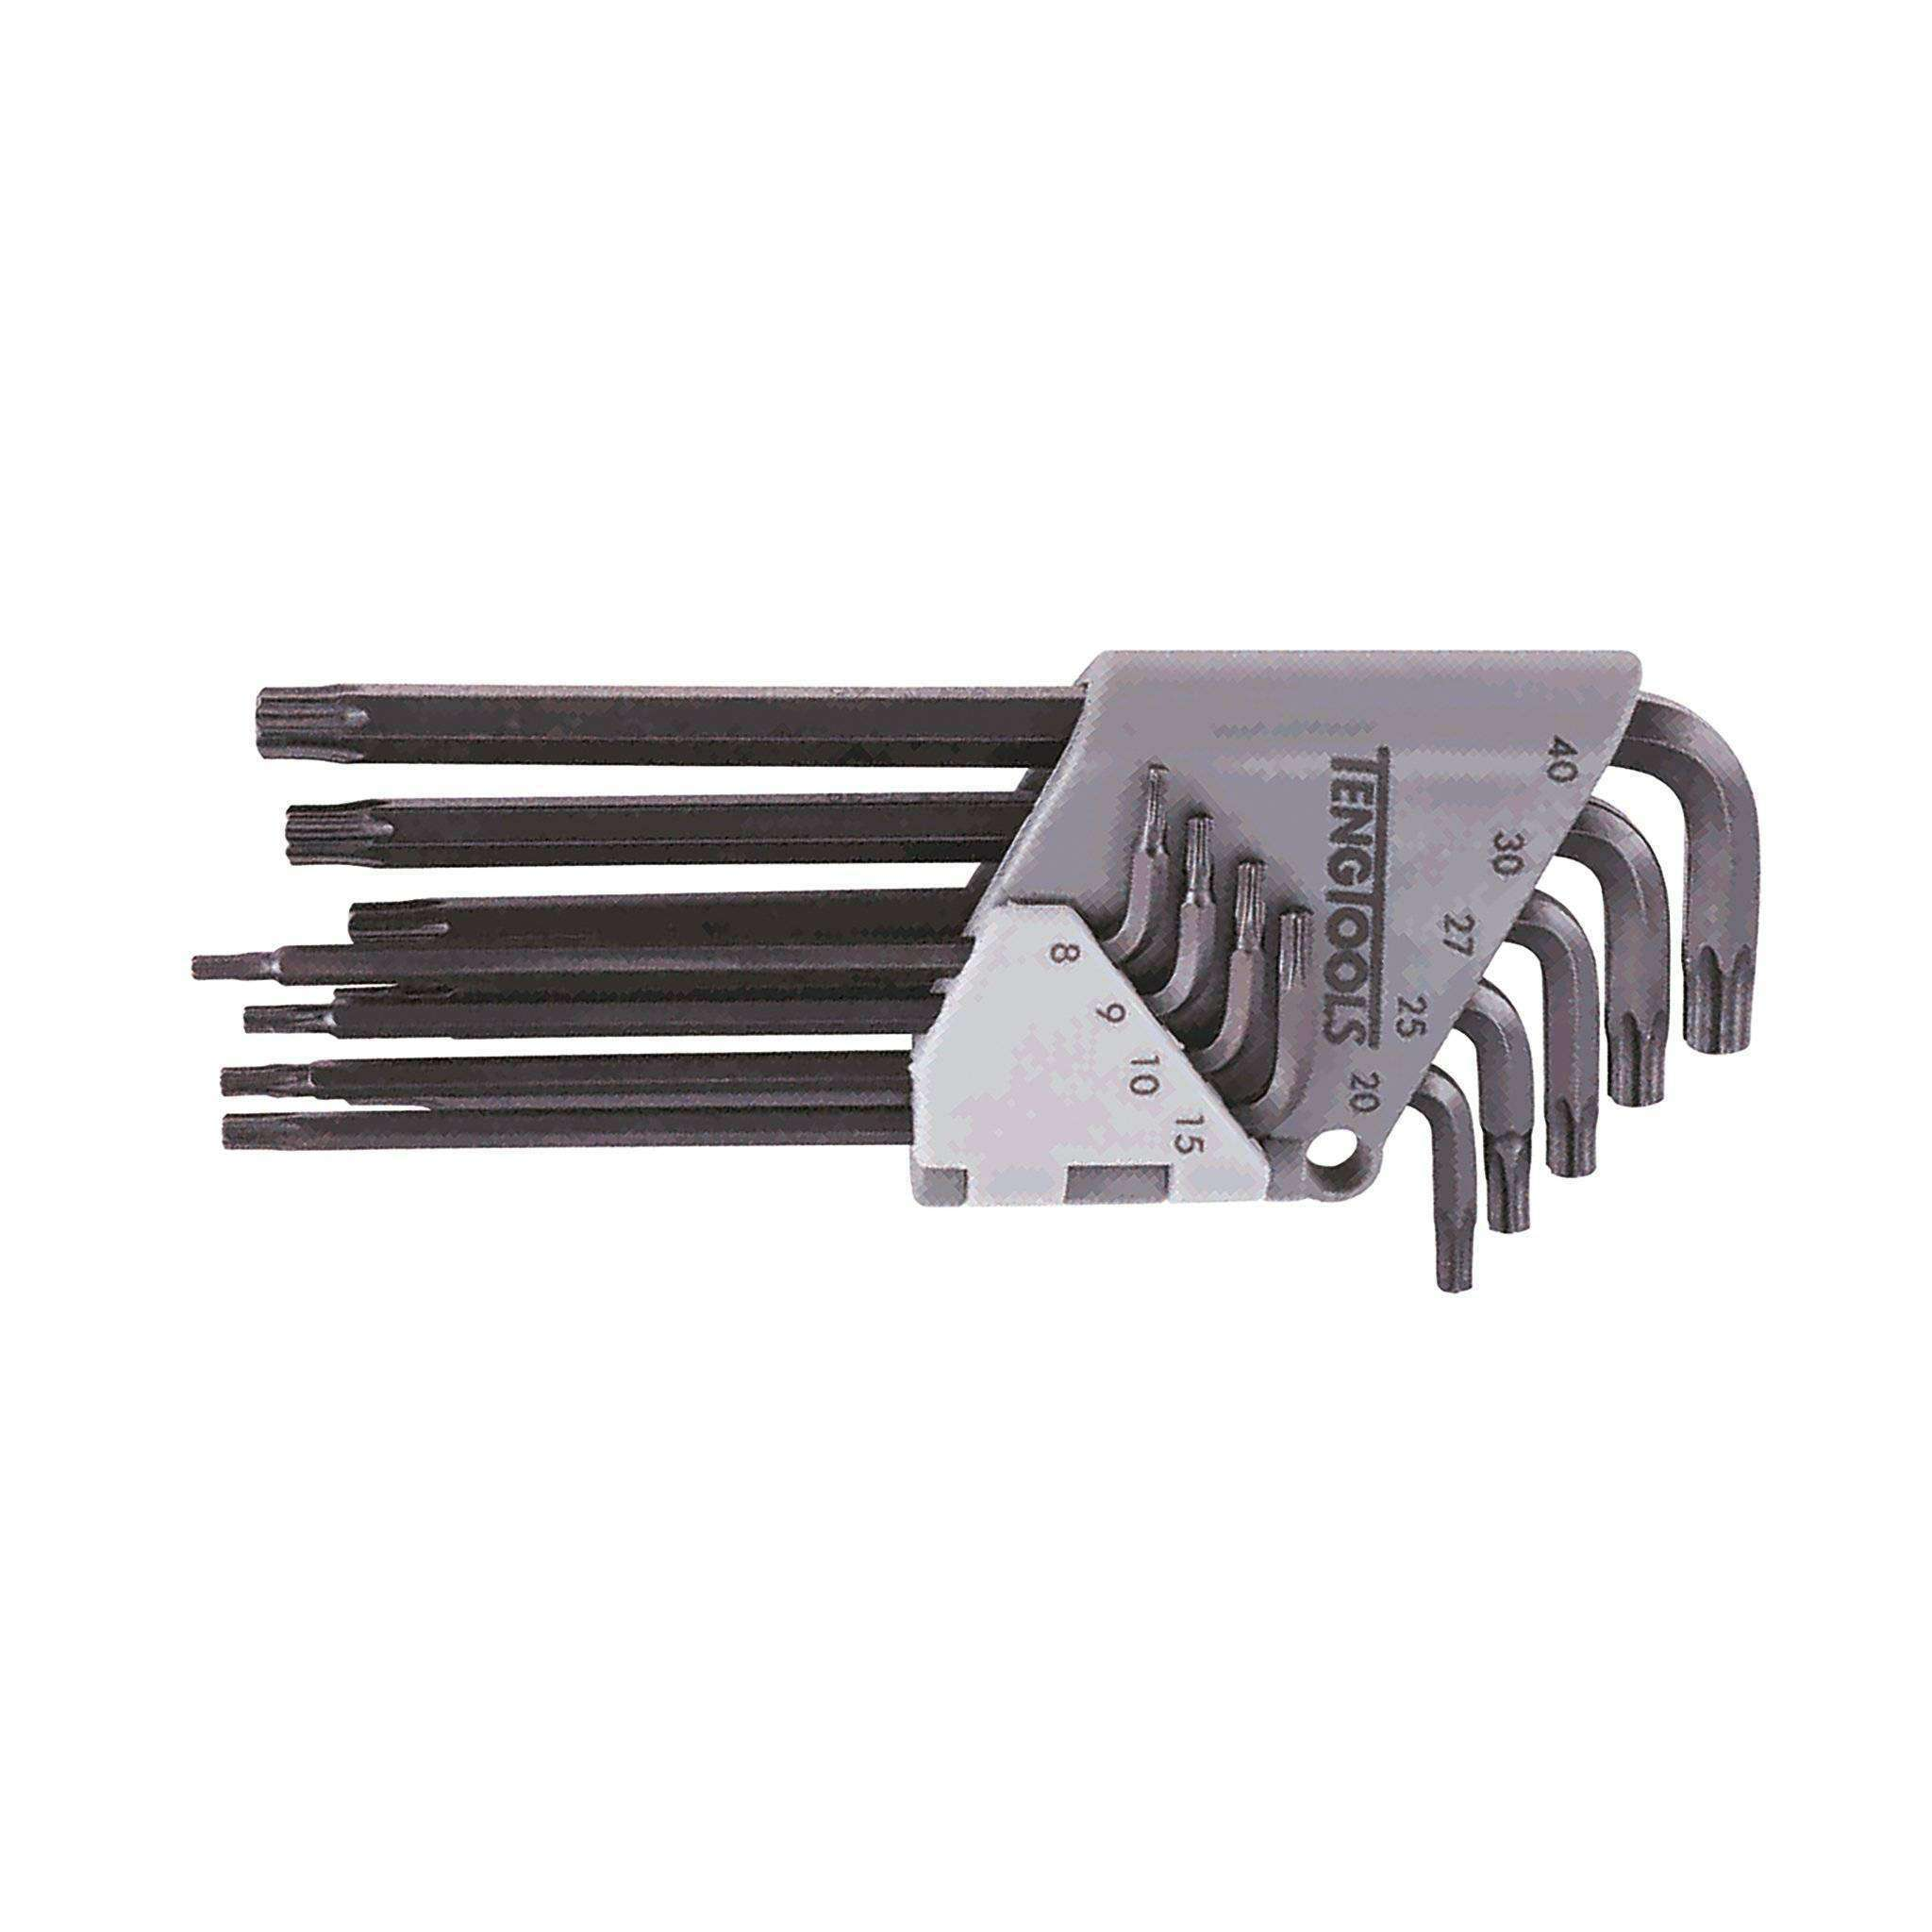 Teng Tools 1479TX 9 Piece TX Key Set - Teng Tools USA